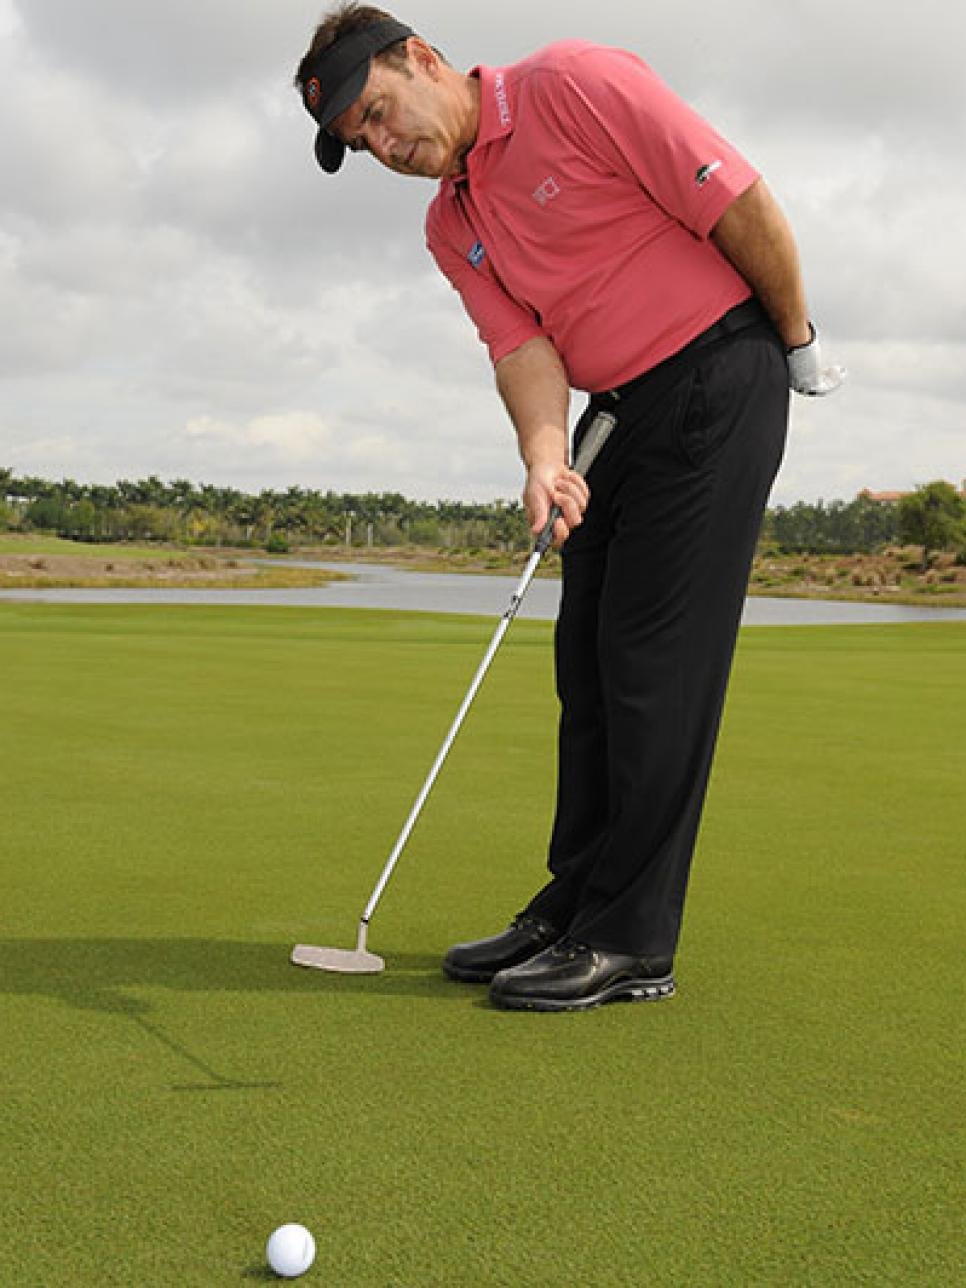 Putt with your right arm only on the practice green